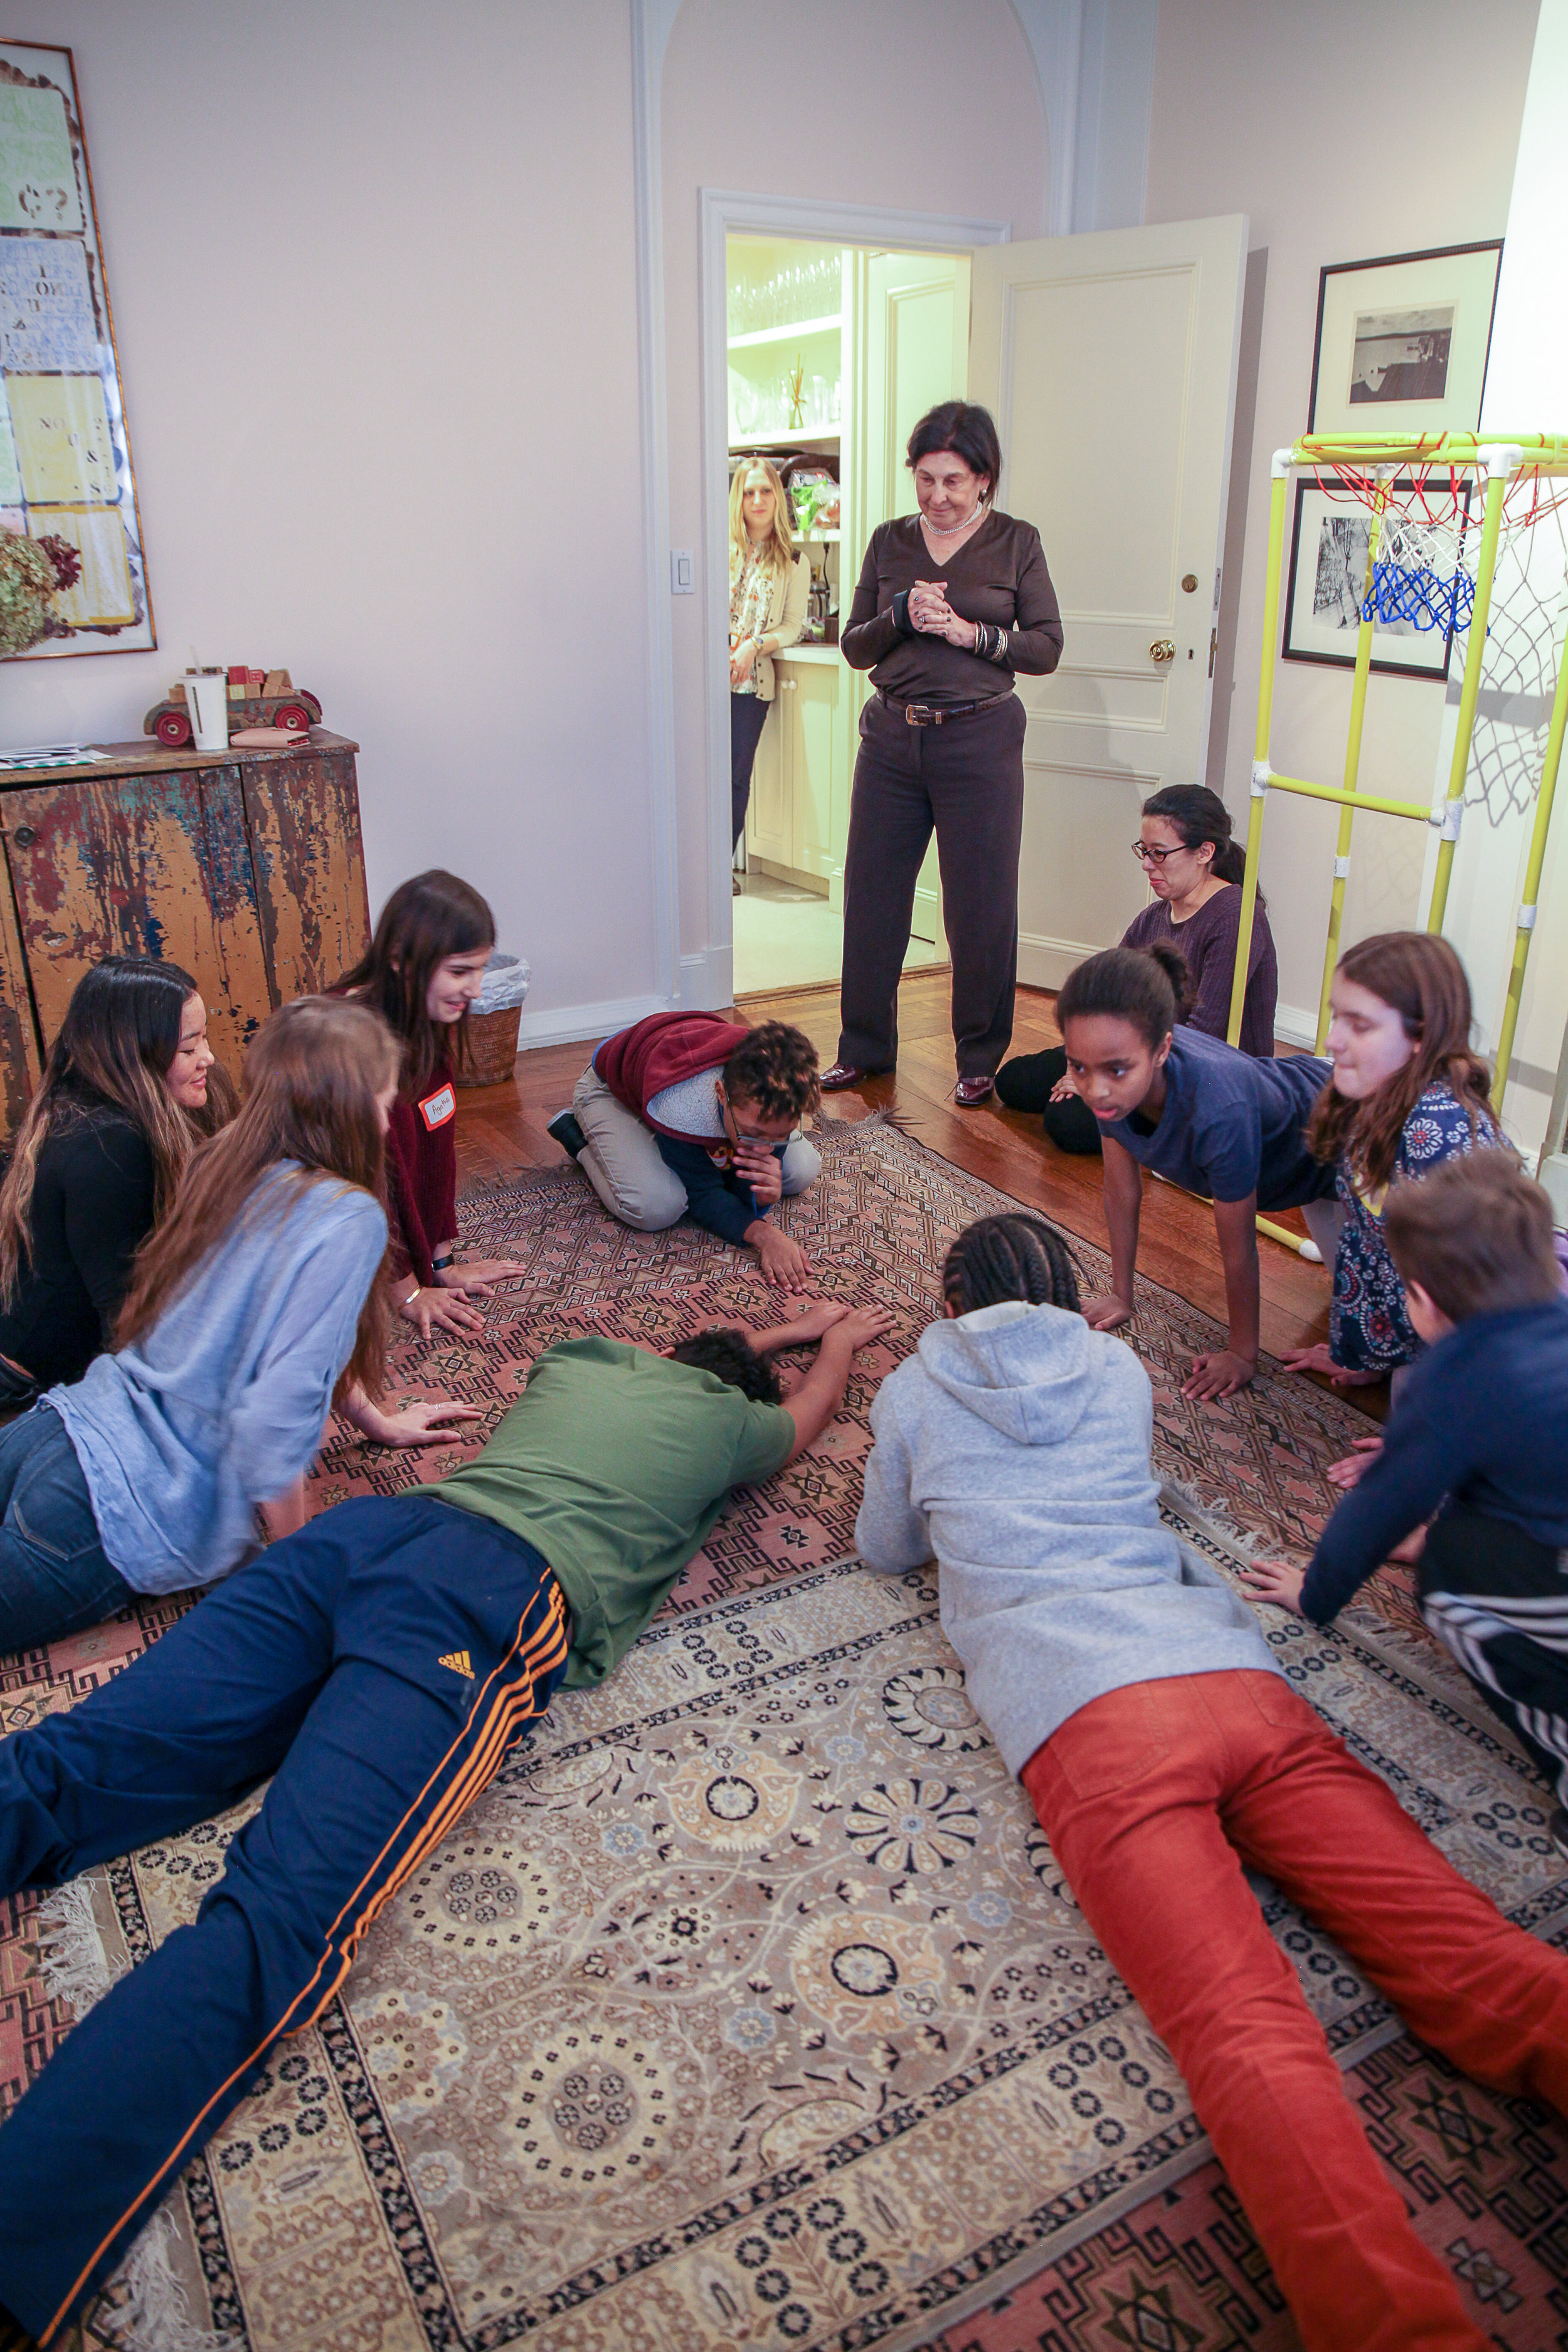 Spark: A Psycho-Social Skills group - Join us after school every Wednesday for our unique mentoring program: enroll your child today, or volunteer as a Spark Mentor!